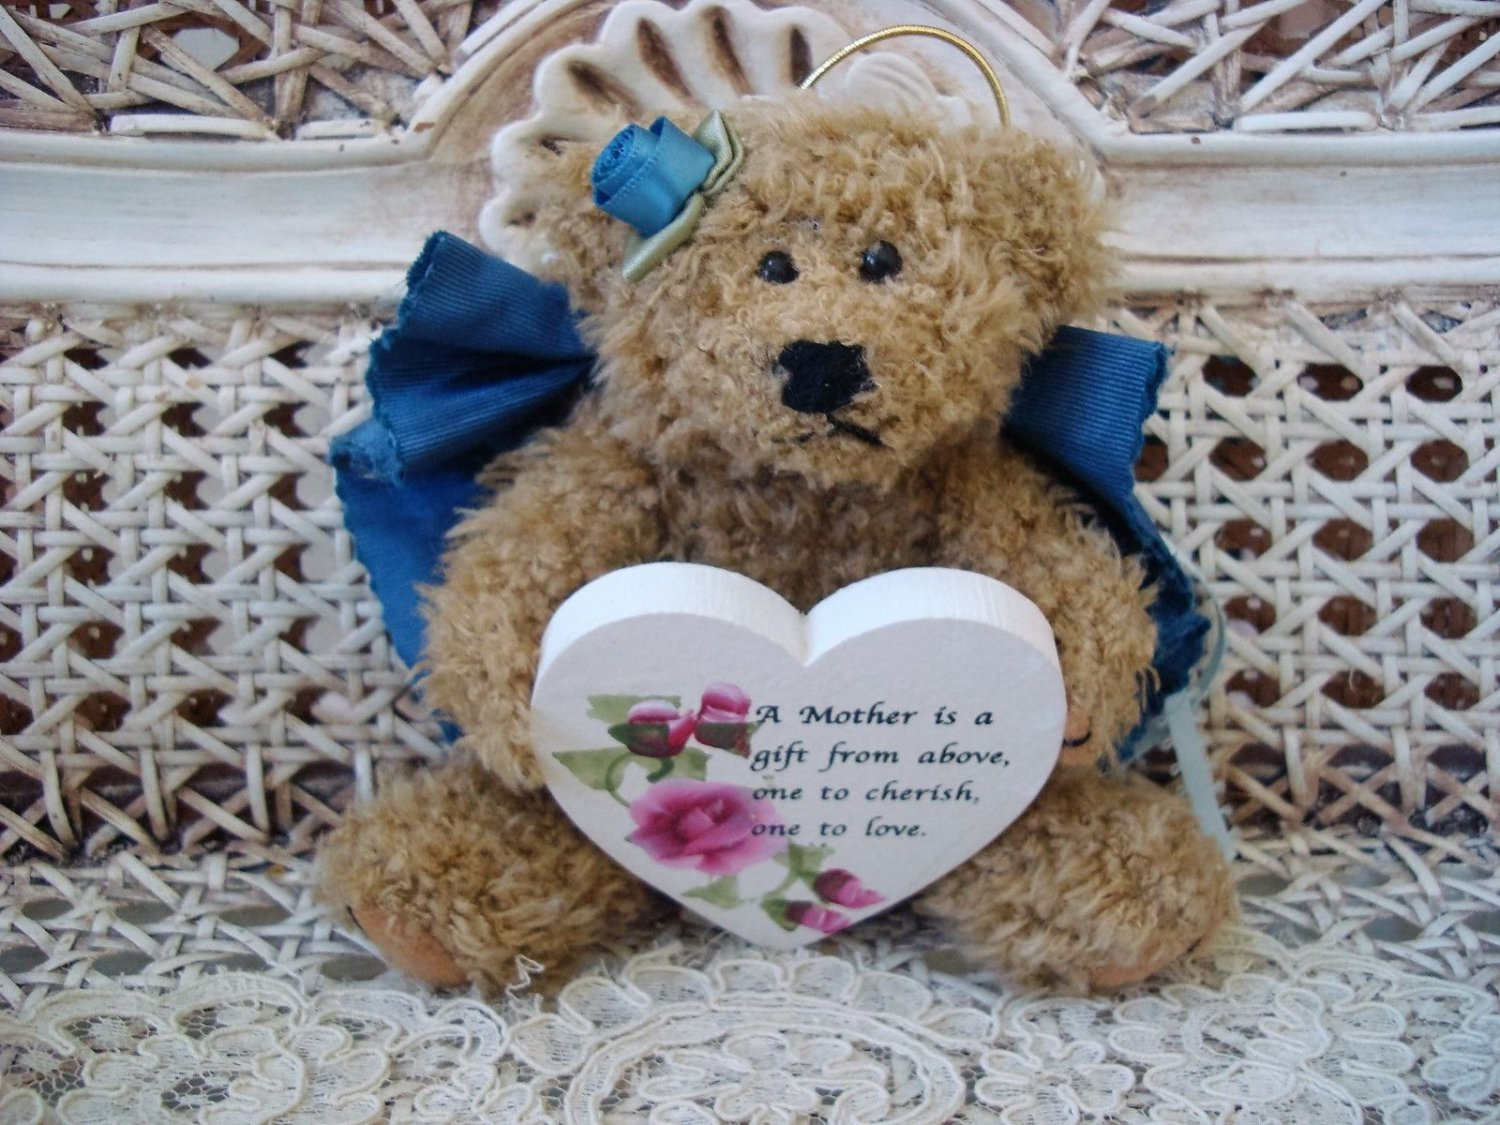 A MOTHER IS A GIFT FROM ABOVE BLUE BEAR ORNAMENT WITH WOODEN HEART SO CUTE